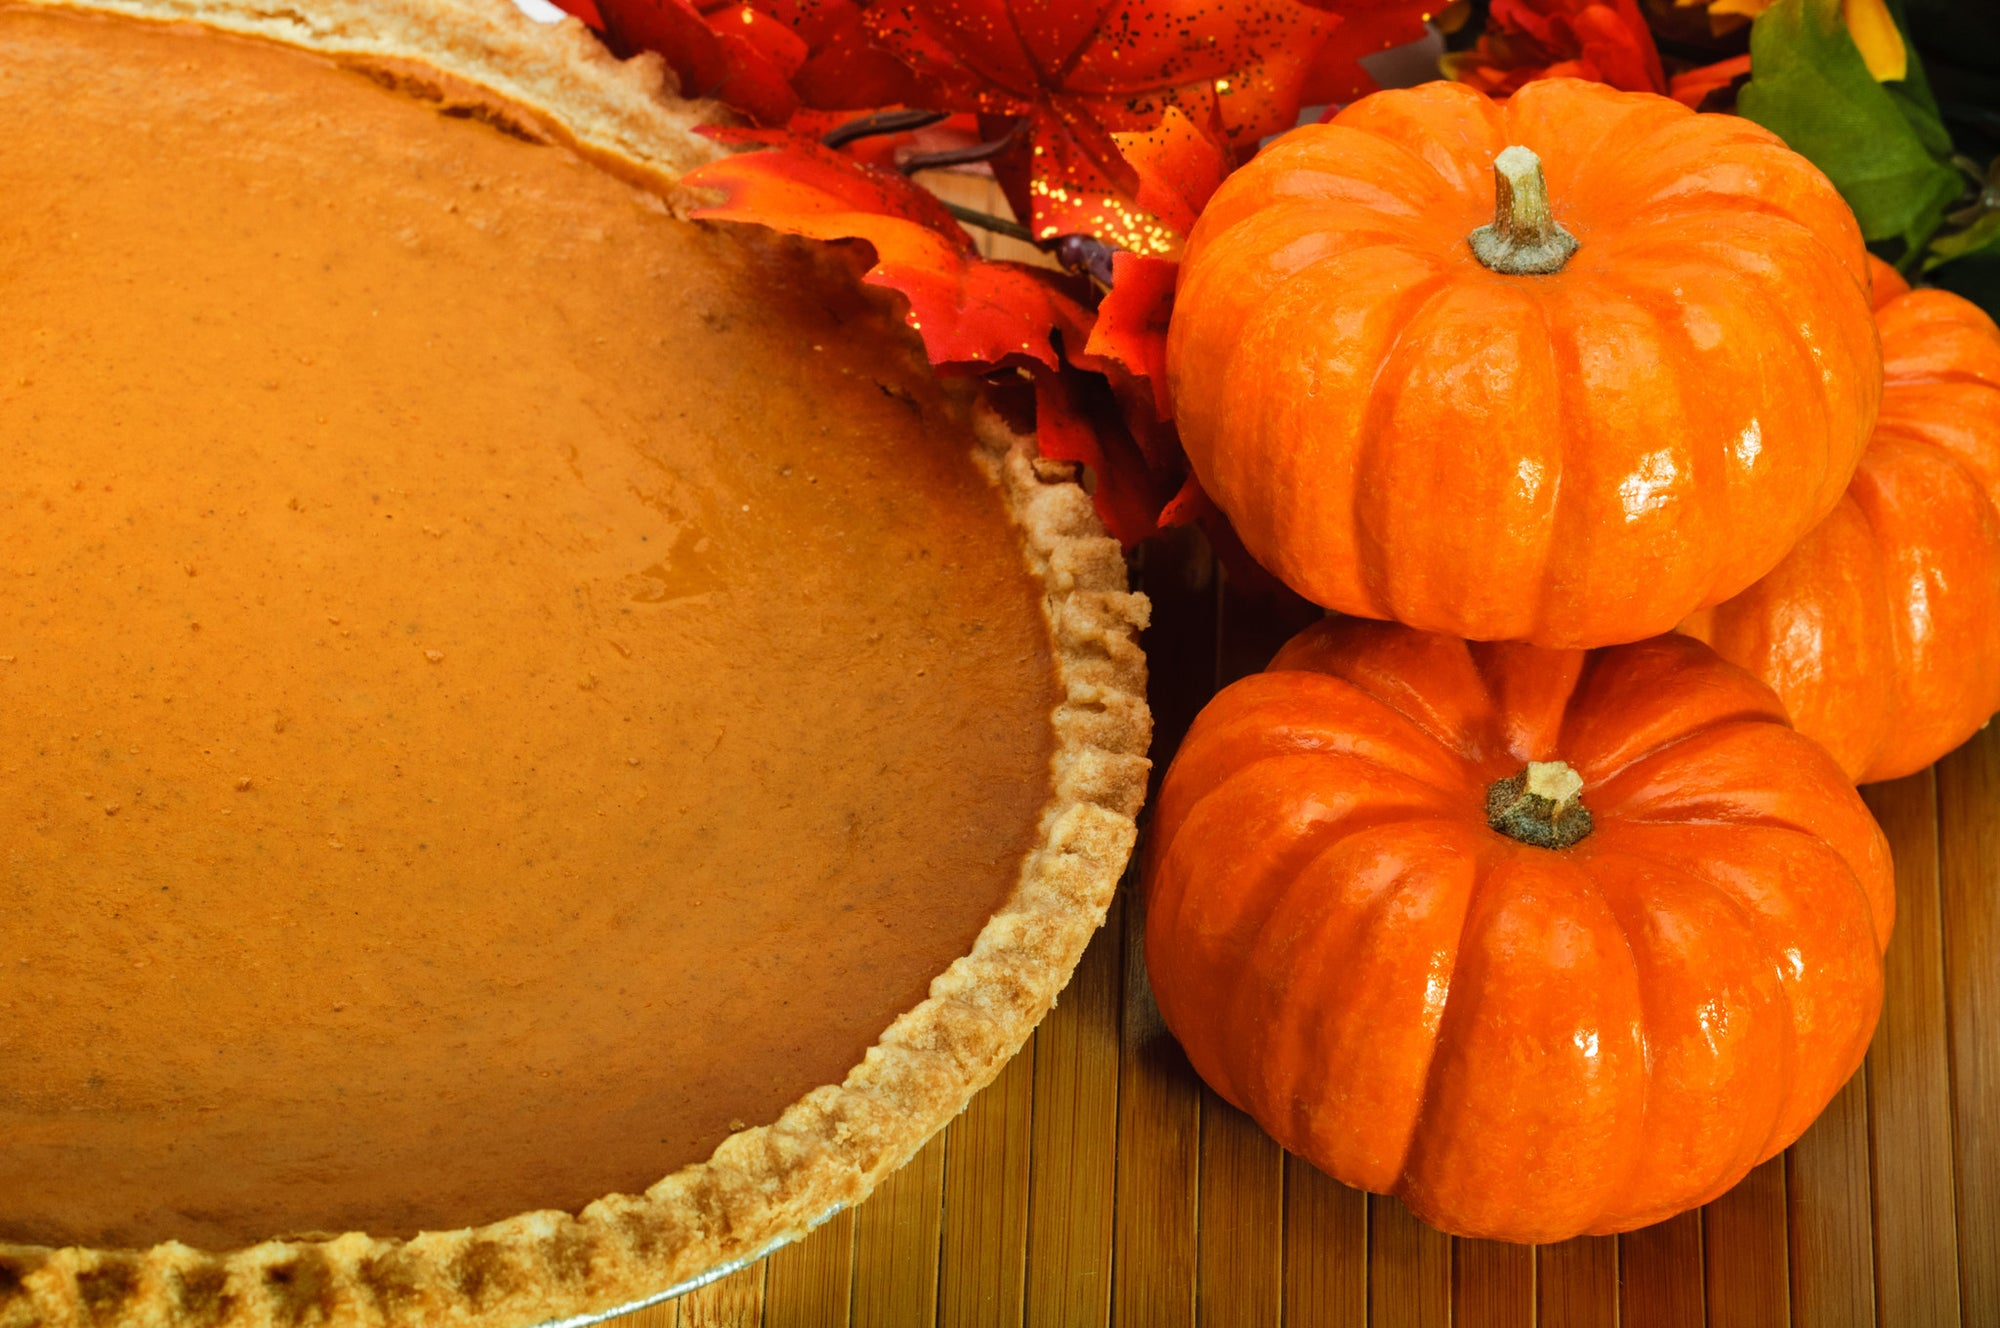 Paleo Pumpkin Pie Recipe: Make Your Home-Made Filling in Clay!